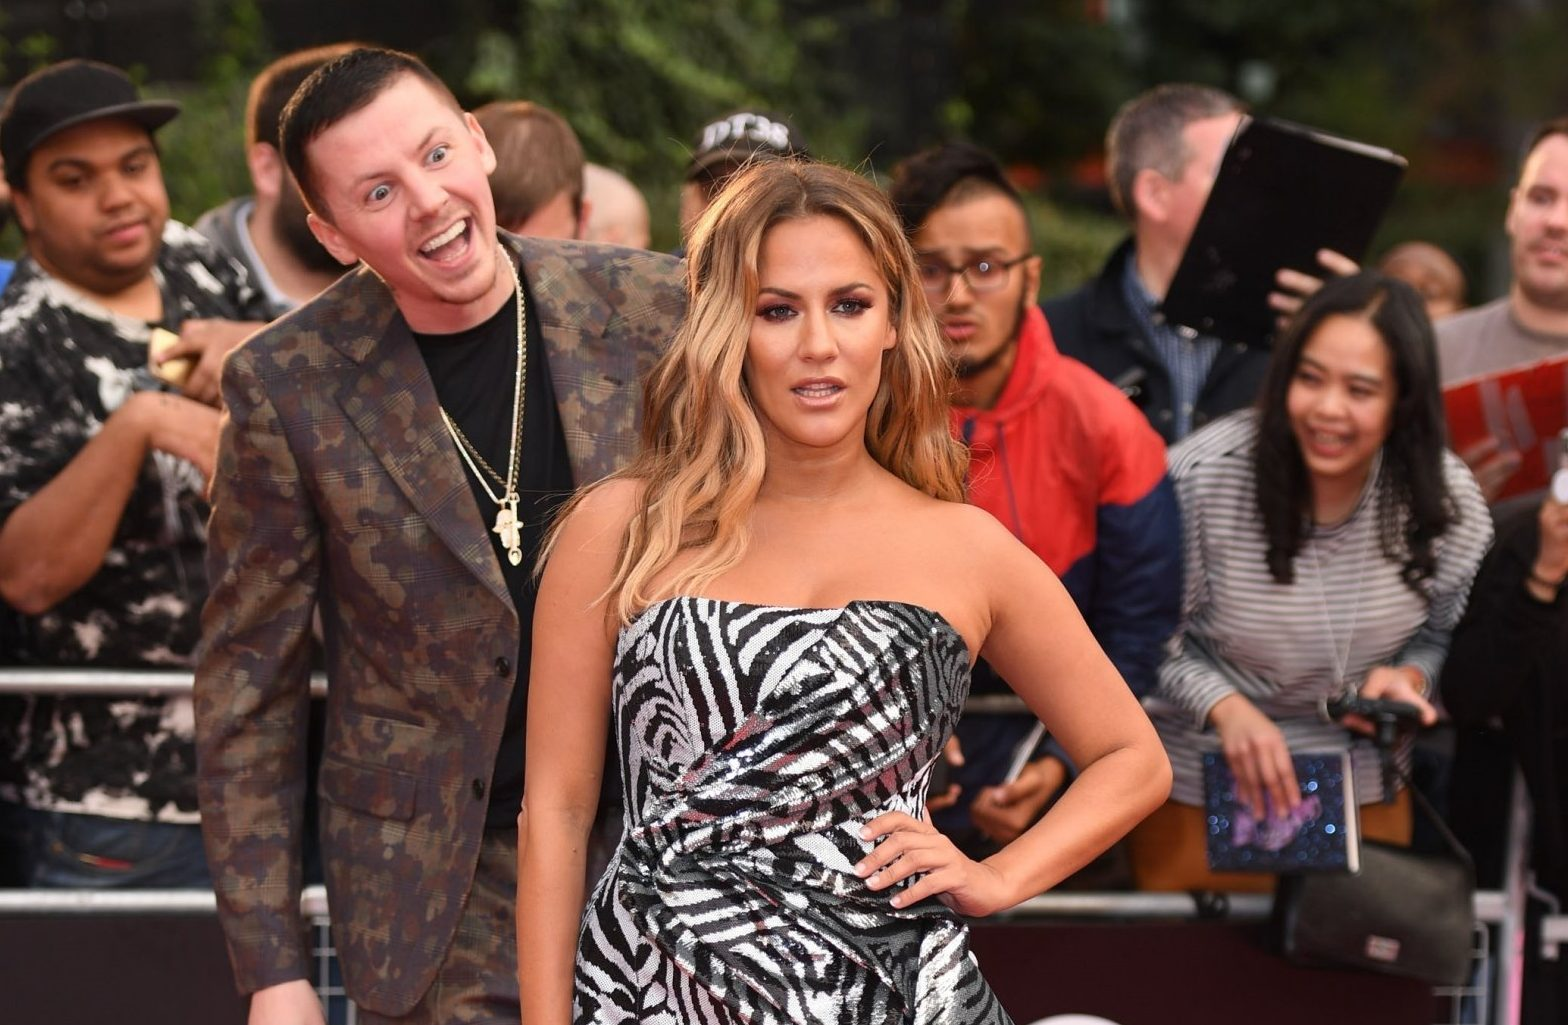 BGUK_1327042 - London, UNITED KINGDOM - The 2018 GQ Men of the Year Awards held at the Tate Modern in London Pictured: Professor Green - Stephen Paul Manderson - Caroline Flack BACKGRID UK 5 SEPTEMBER 2018 BYLINE MUST READ: TIMMSY / BACKGRID UK: +44 208 344 2007 / uksales@backgrid.com USA: +1 310 798 9111 / usasales@backgrid.com *UK Clients - Pictures Containing Children Please Pixelate Face Prior To Publication*